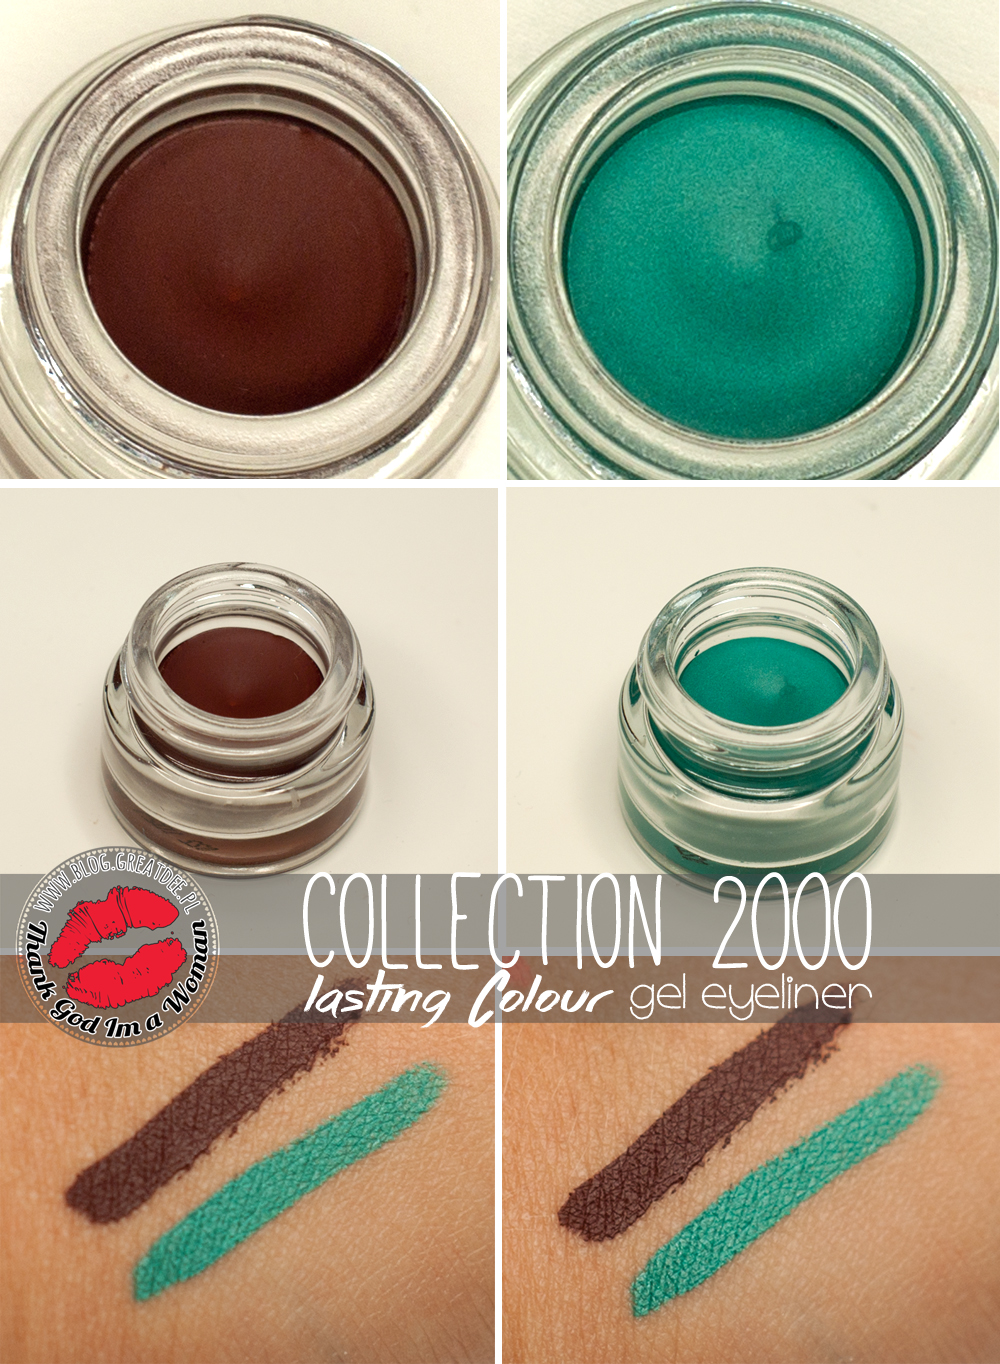 Collection 2000 - Lasting Colour gel eyeliner Brown & Teal